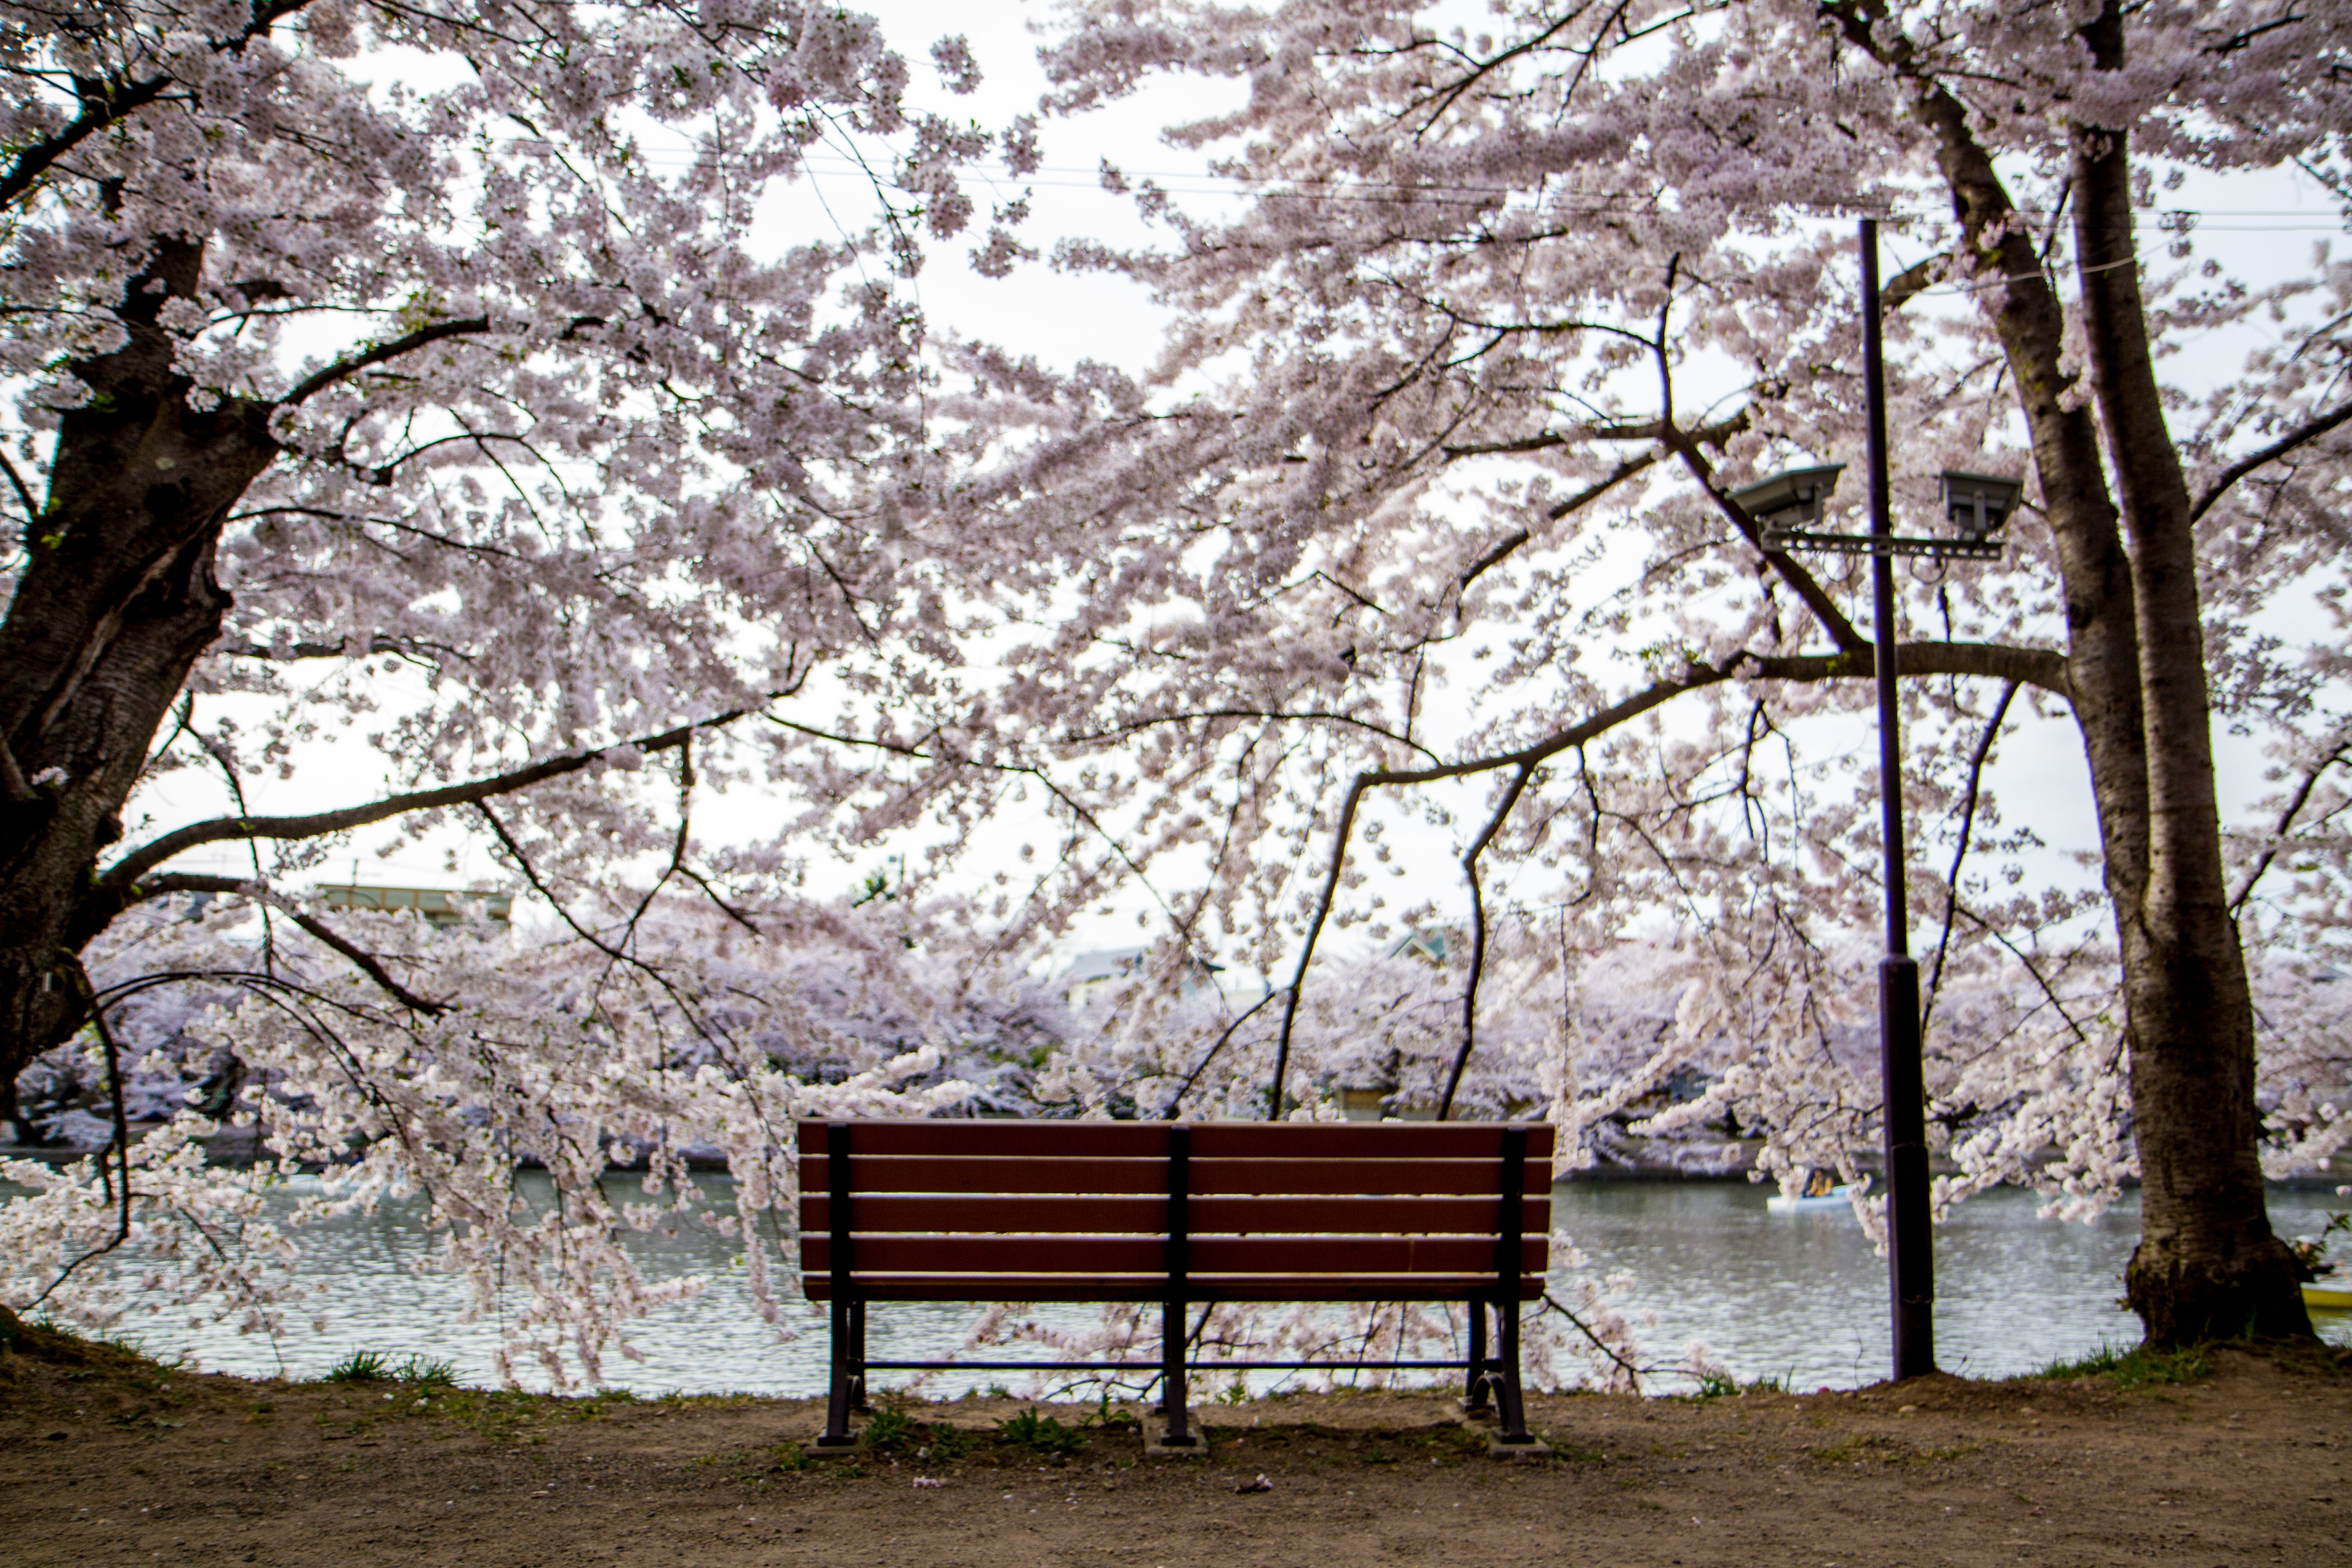 Best Bench To View The Cherry Blossom In Ashino Park In